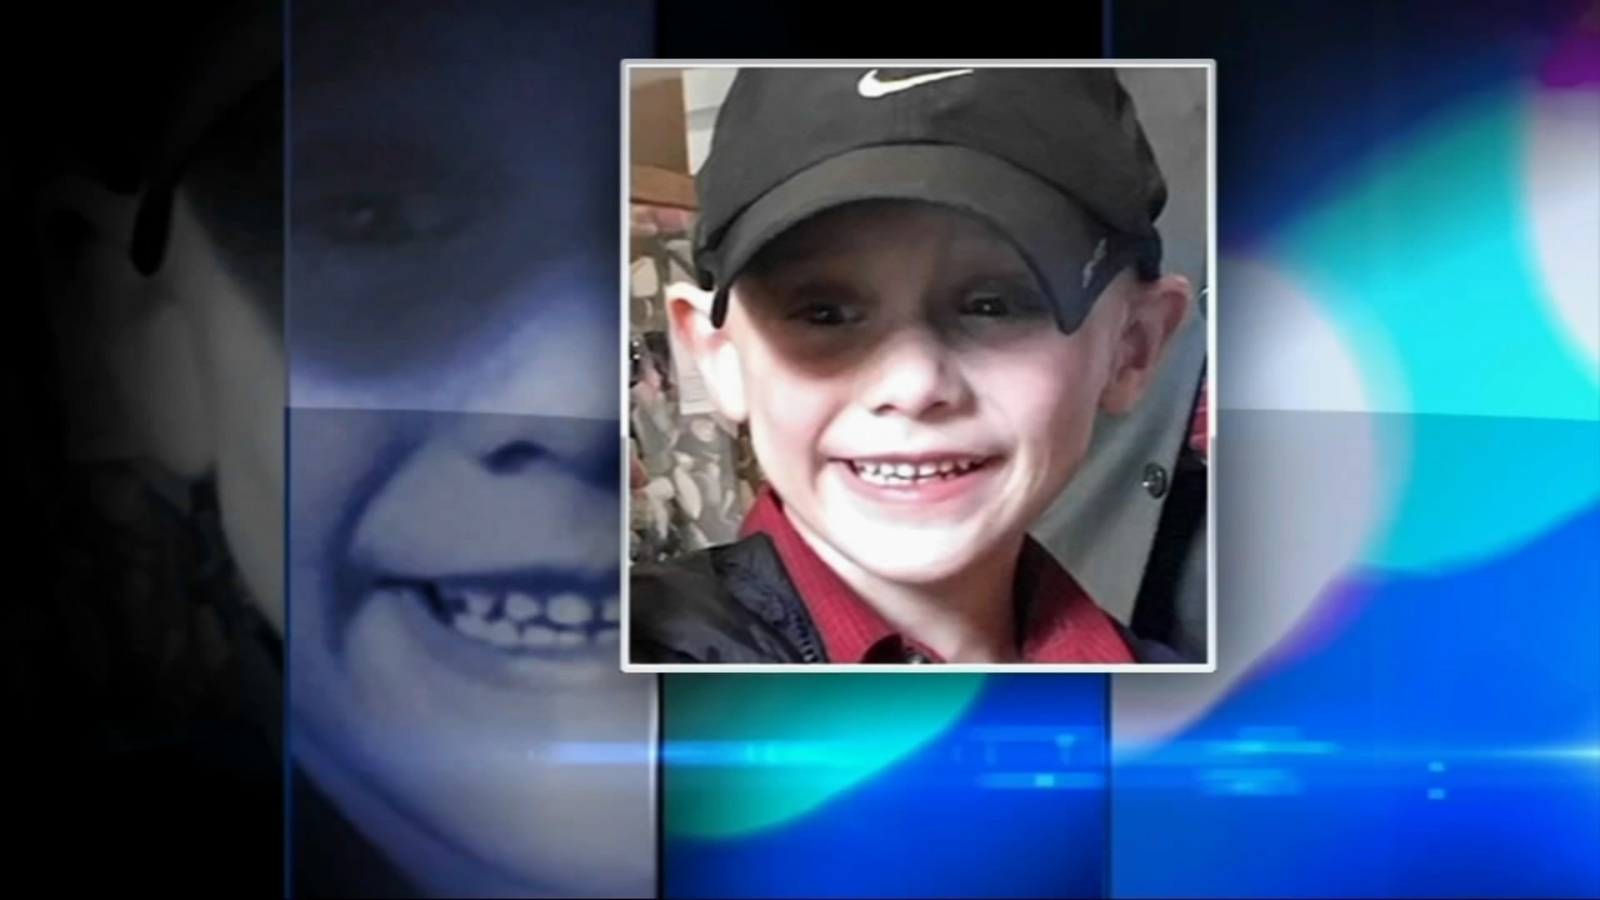 AJ Freund murder: Former DCFS worker who oversaw Crystal Lake boy's case pleads not guilty